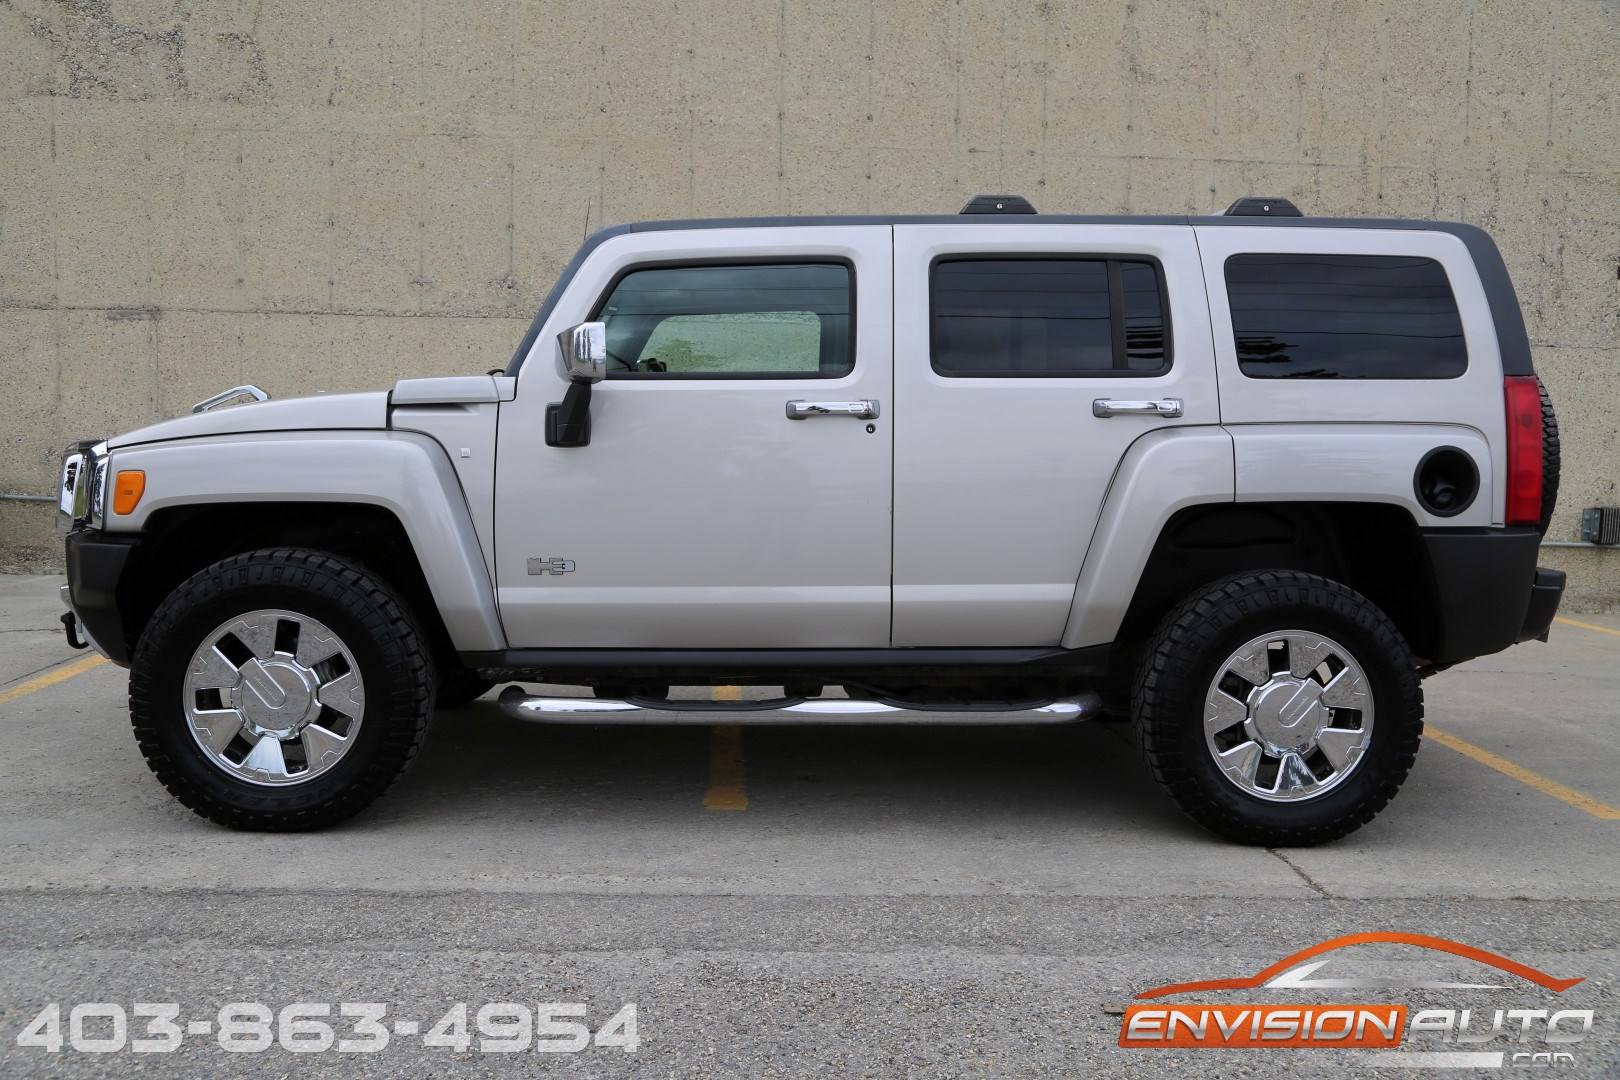 2008 h3 hummer suv alpha h3x edition 5 3l v8 envision auto. Black Bedroom Furniture Sets. Home Design Ideas